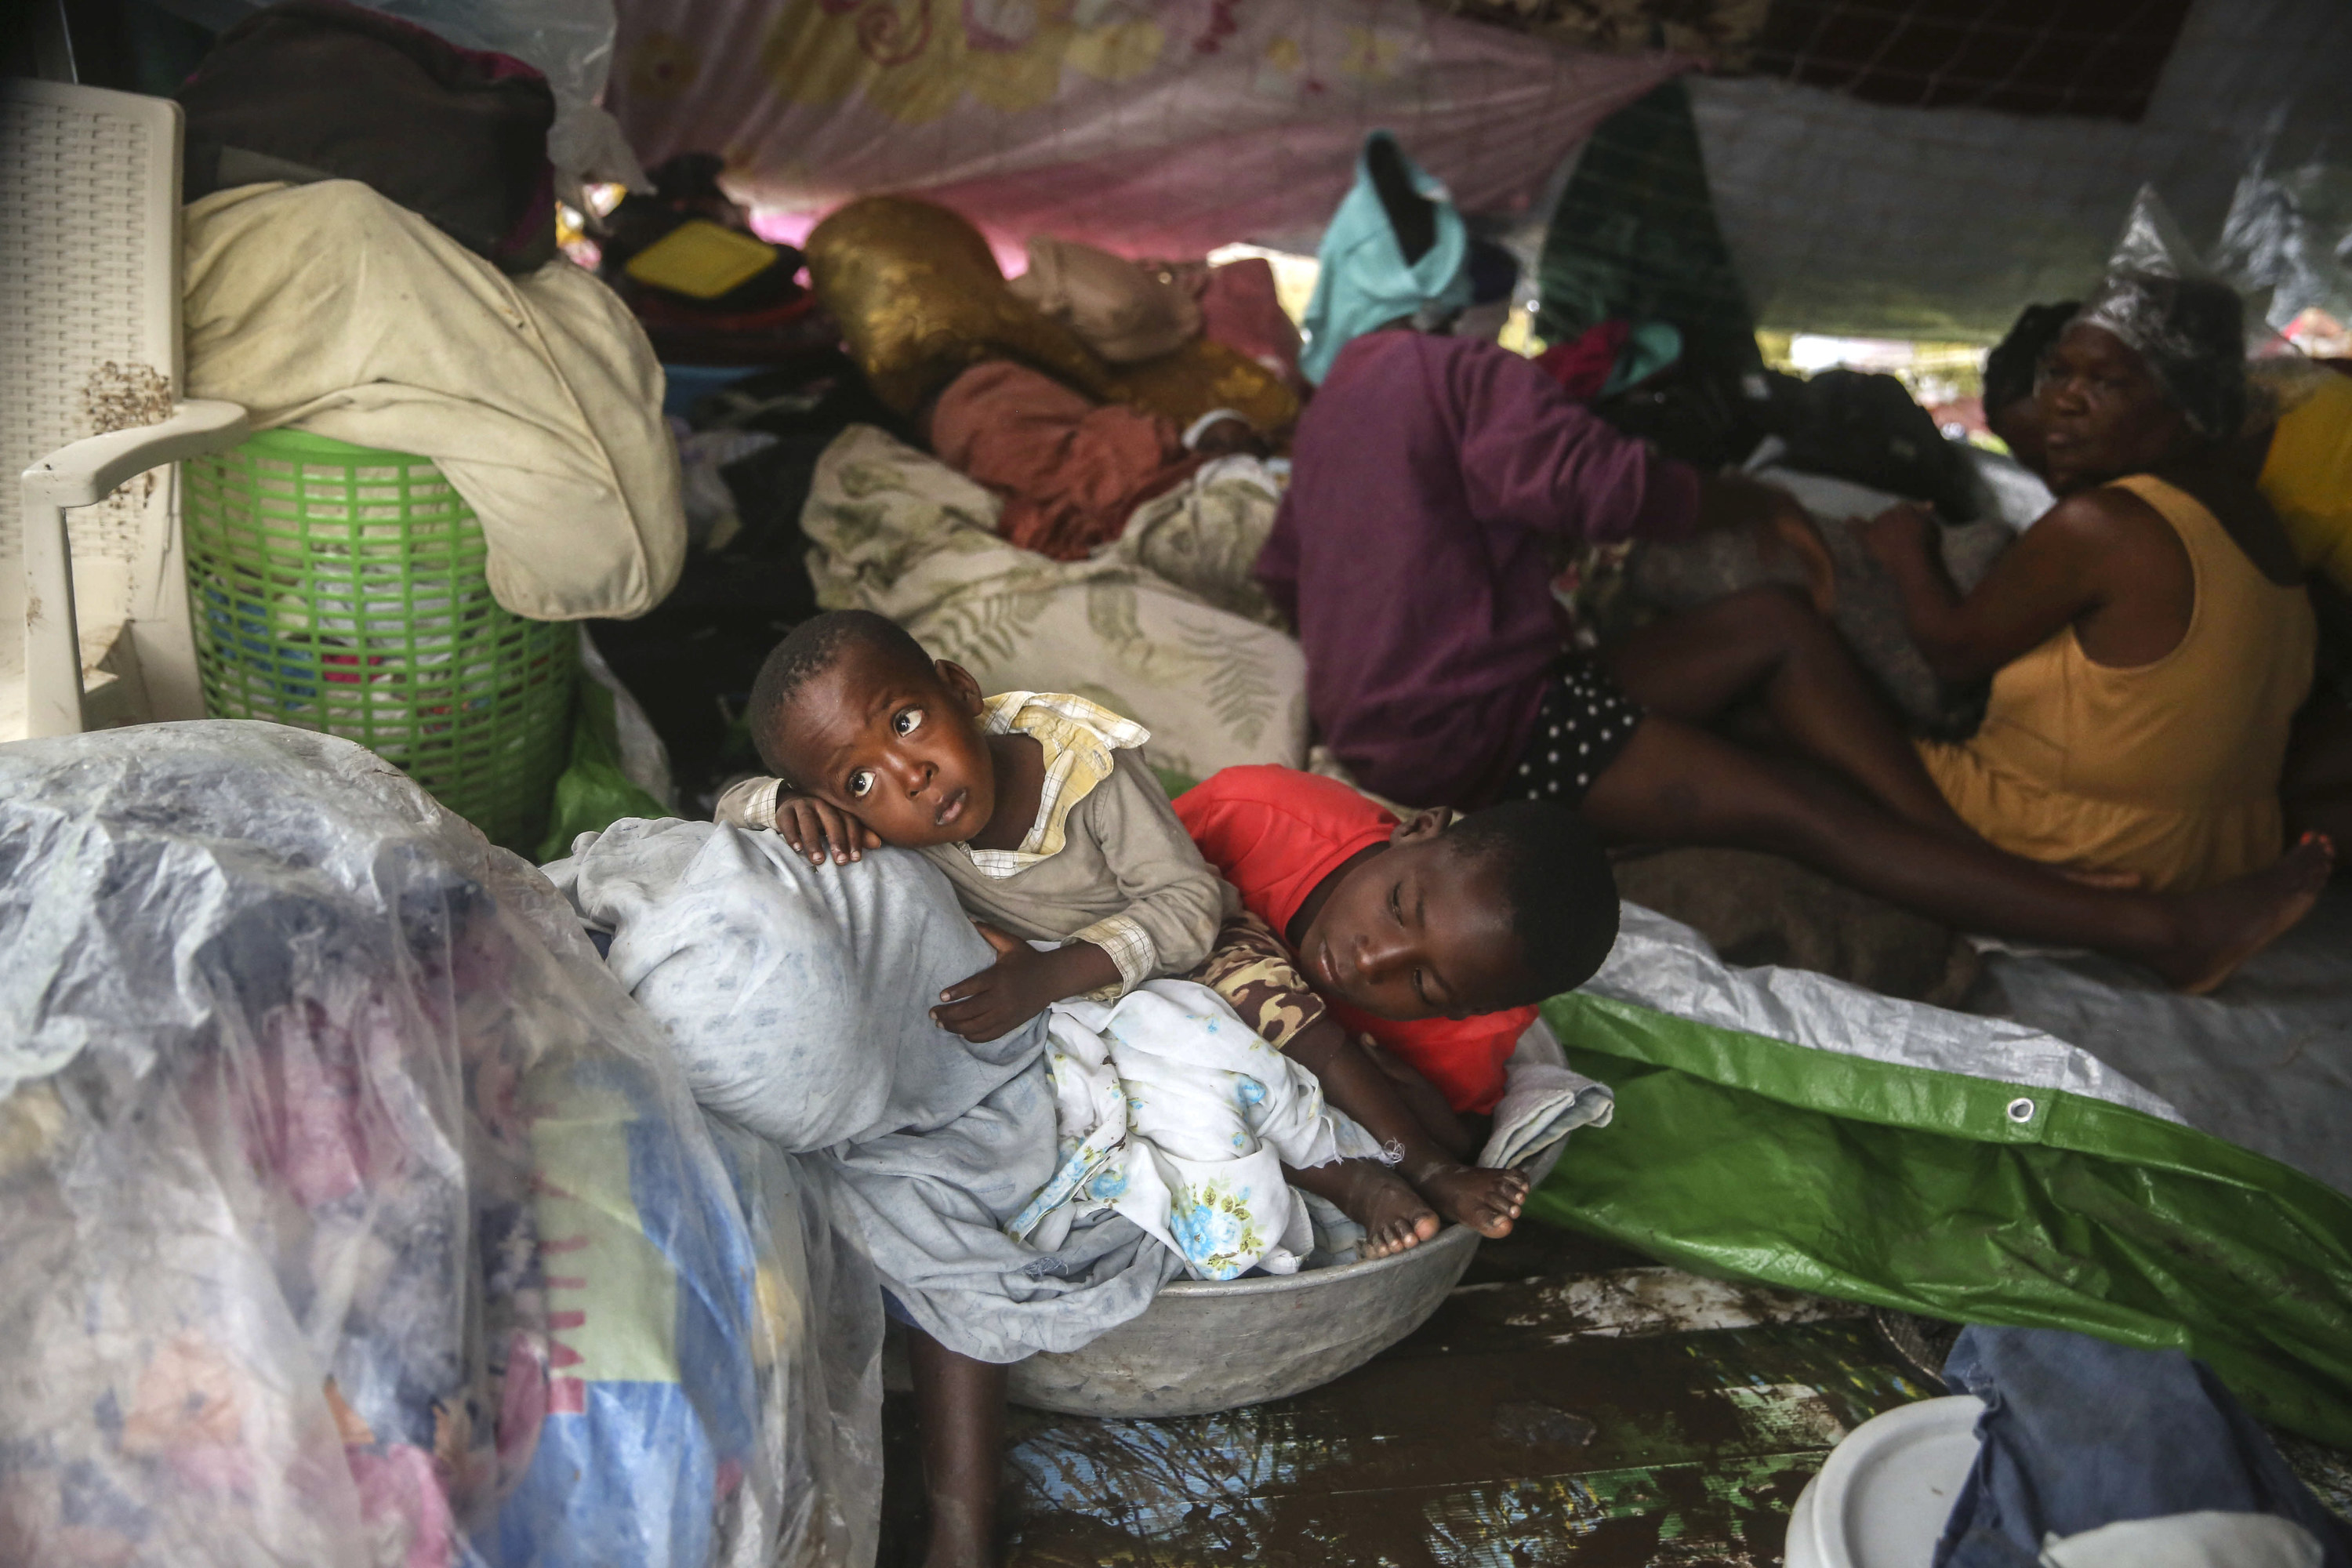 Children huddle in a basket and lie on mattresses on the ground